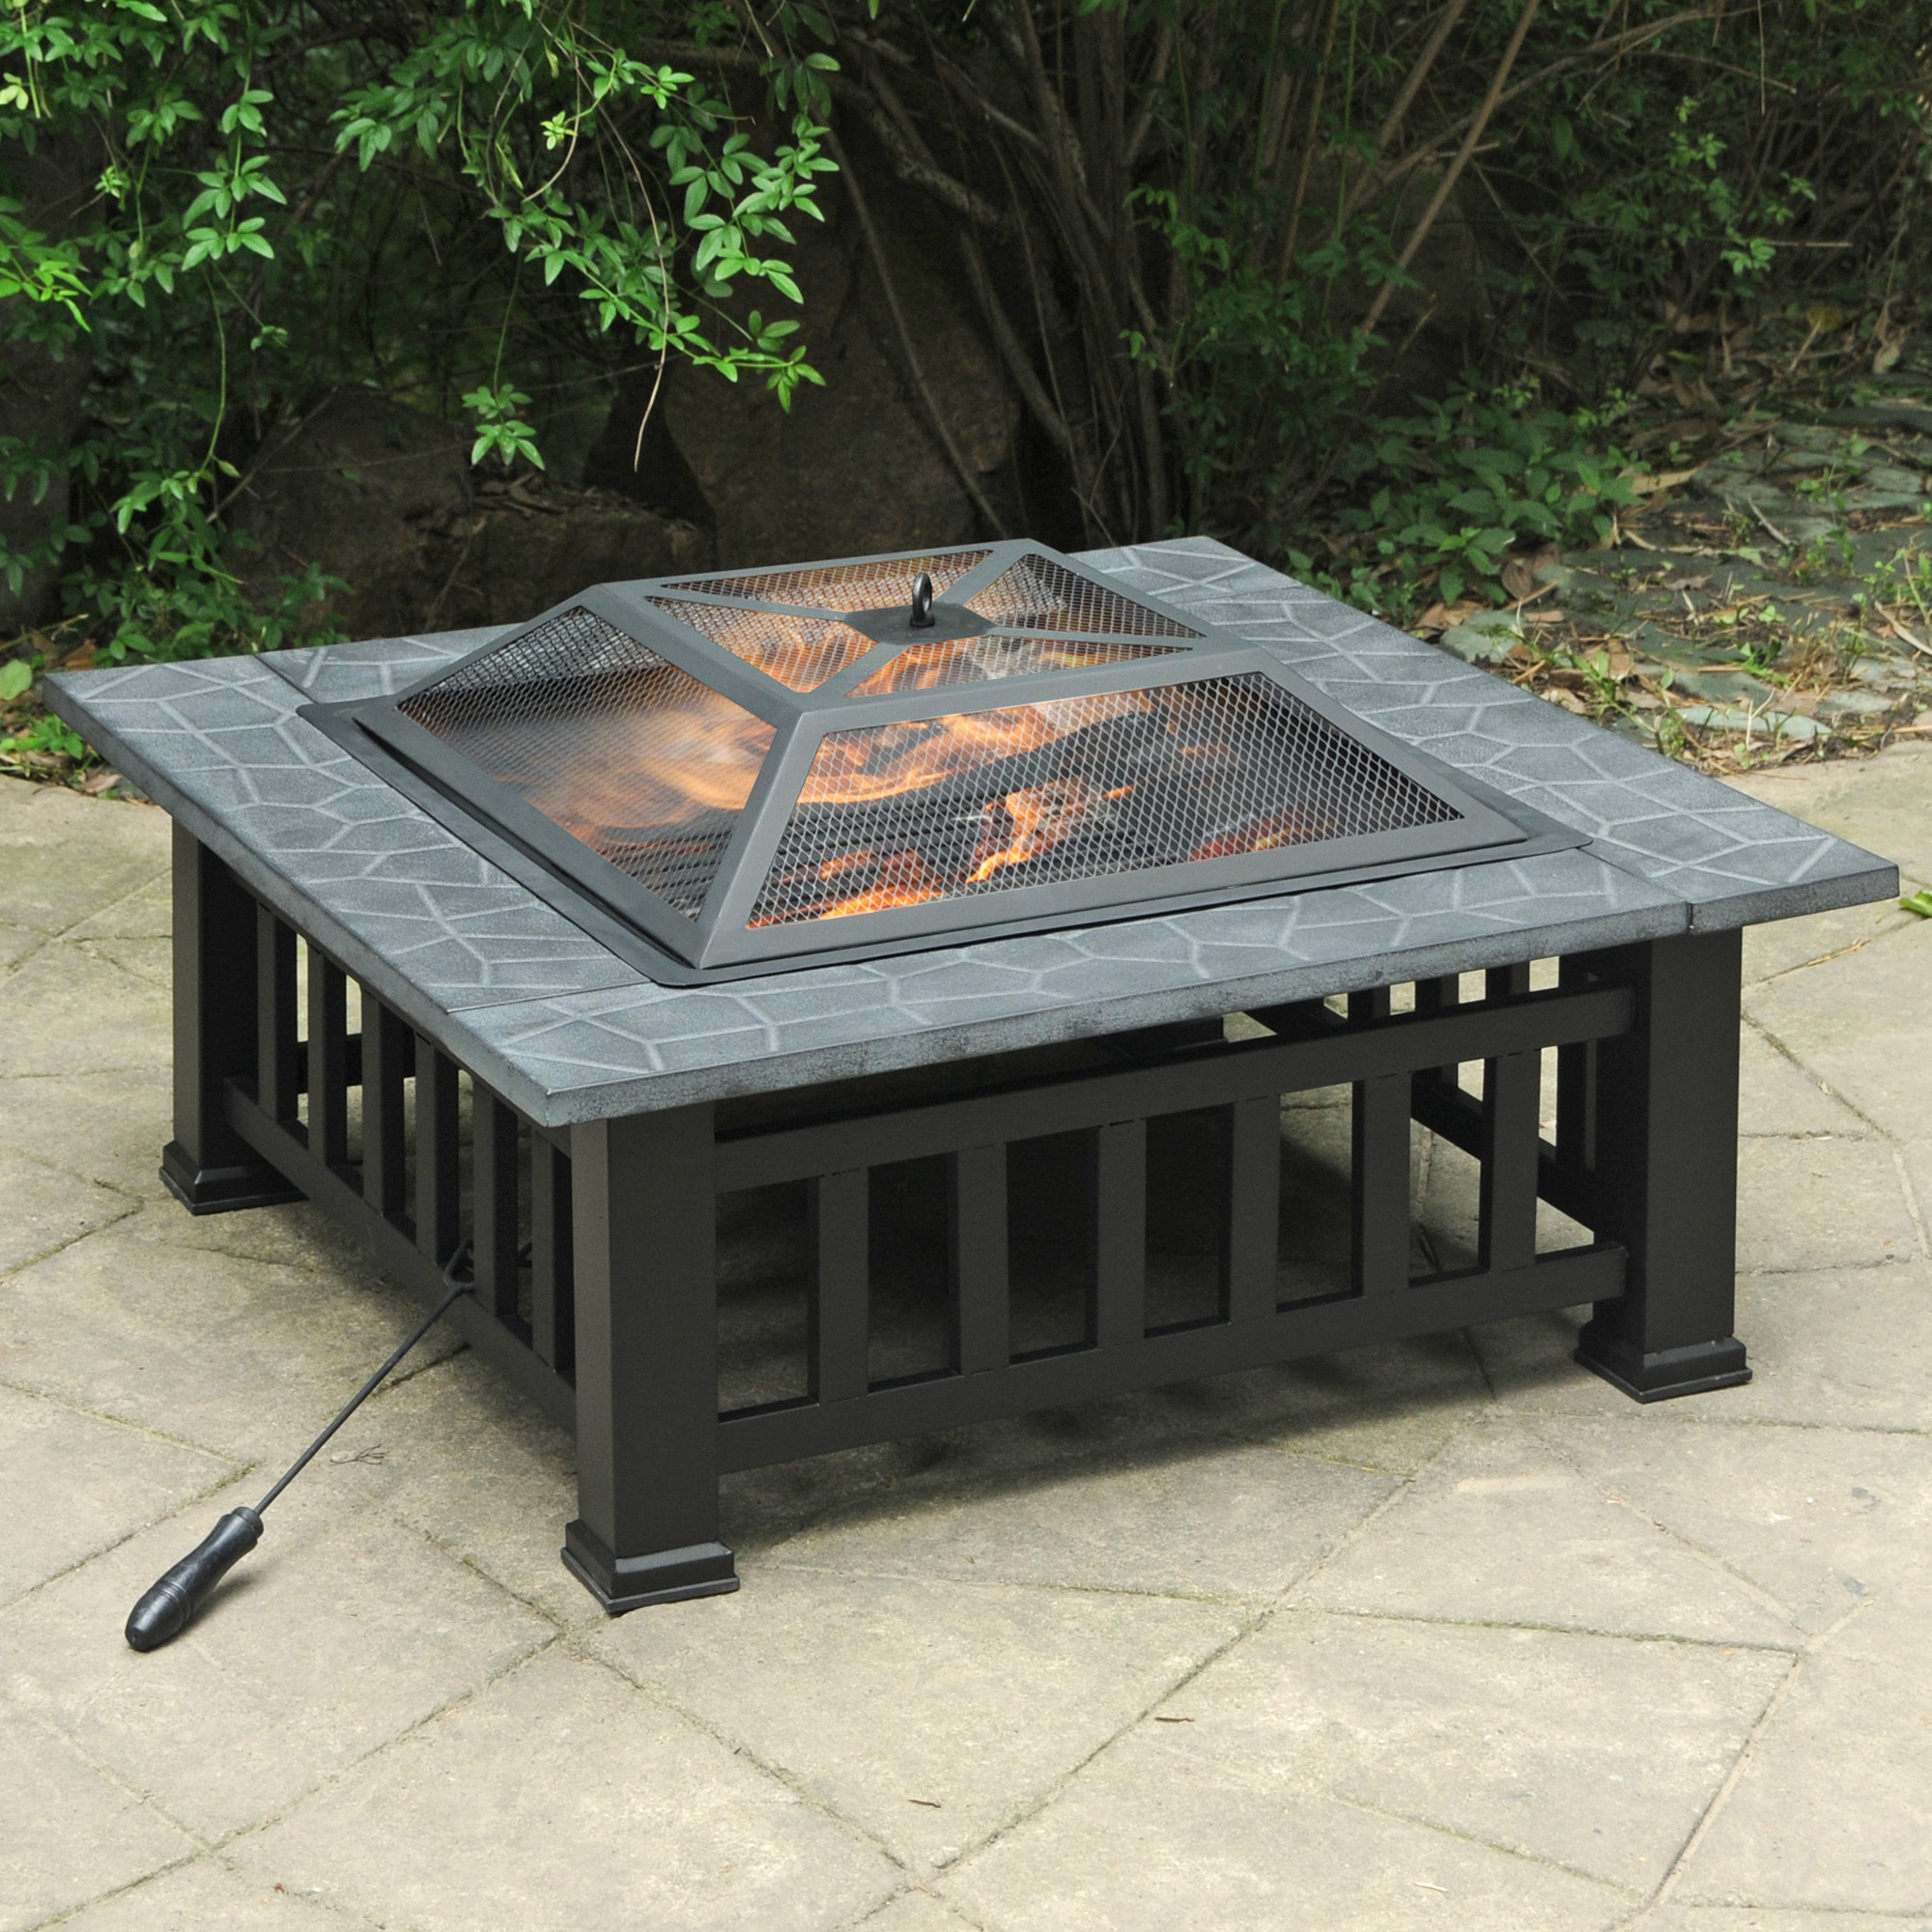 Axxonn 32 Alhambra Fire Pit With Safety Screen And Weatherproof Cover Wood Burning Fire Bowl Walmart Com Walmart Com